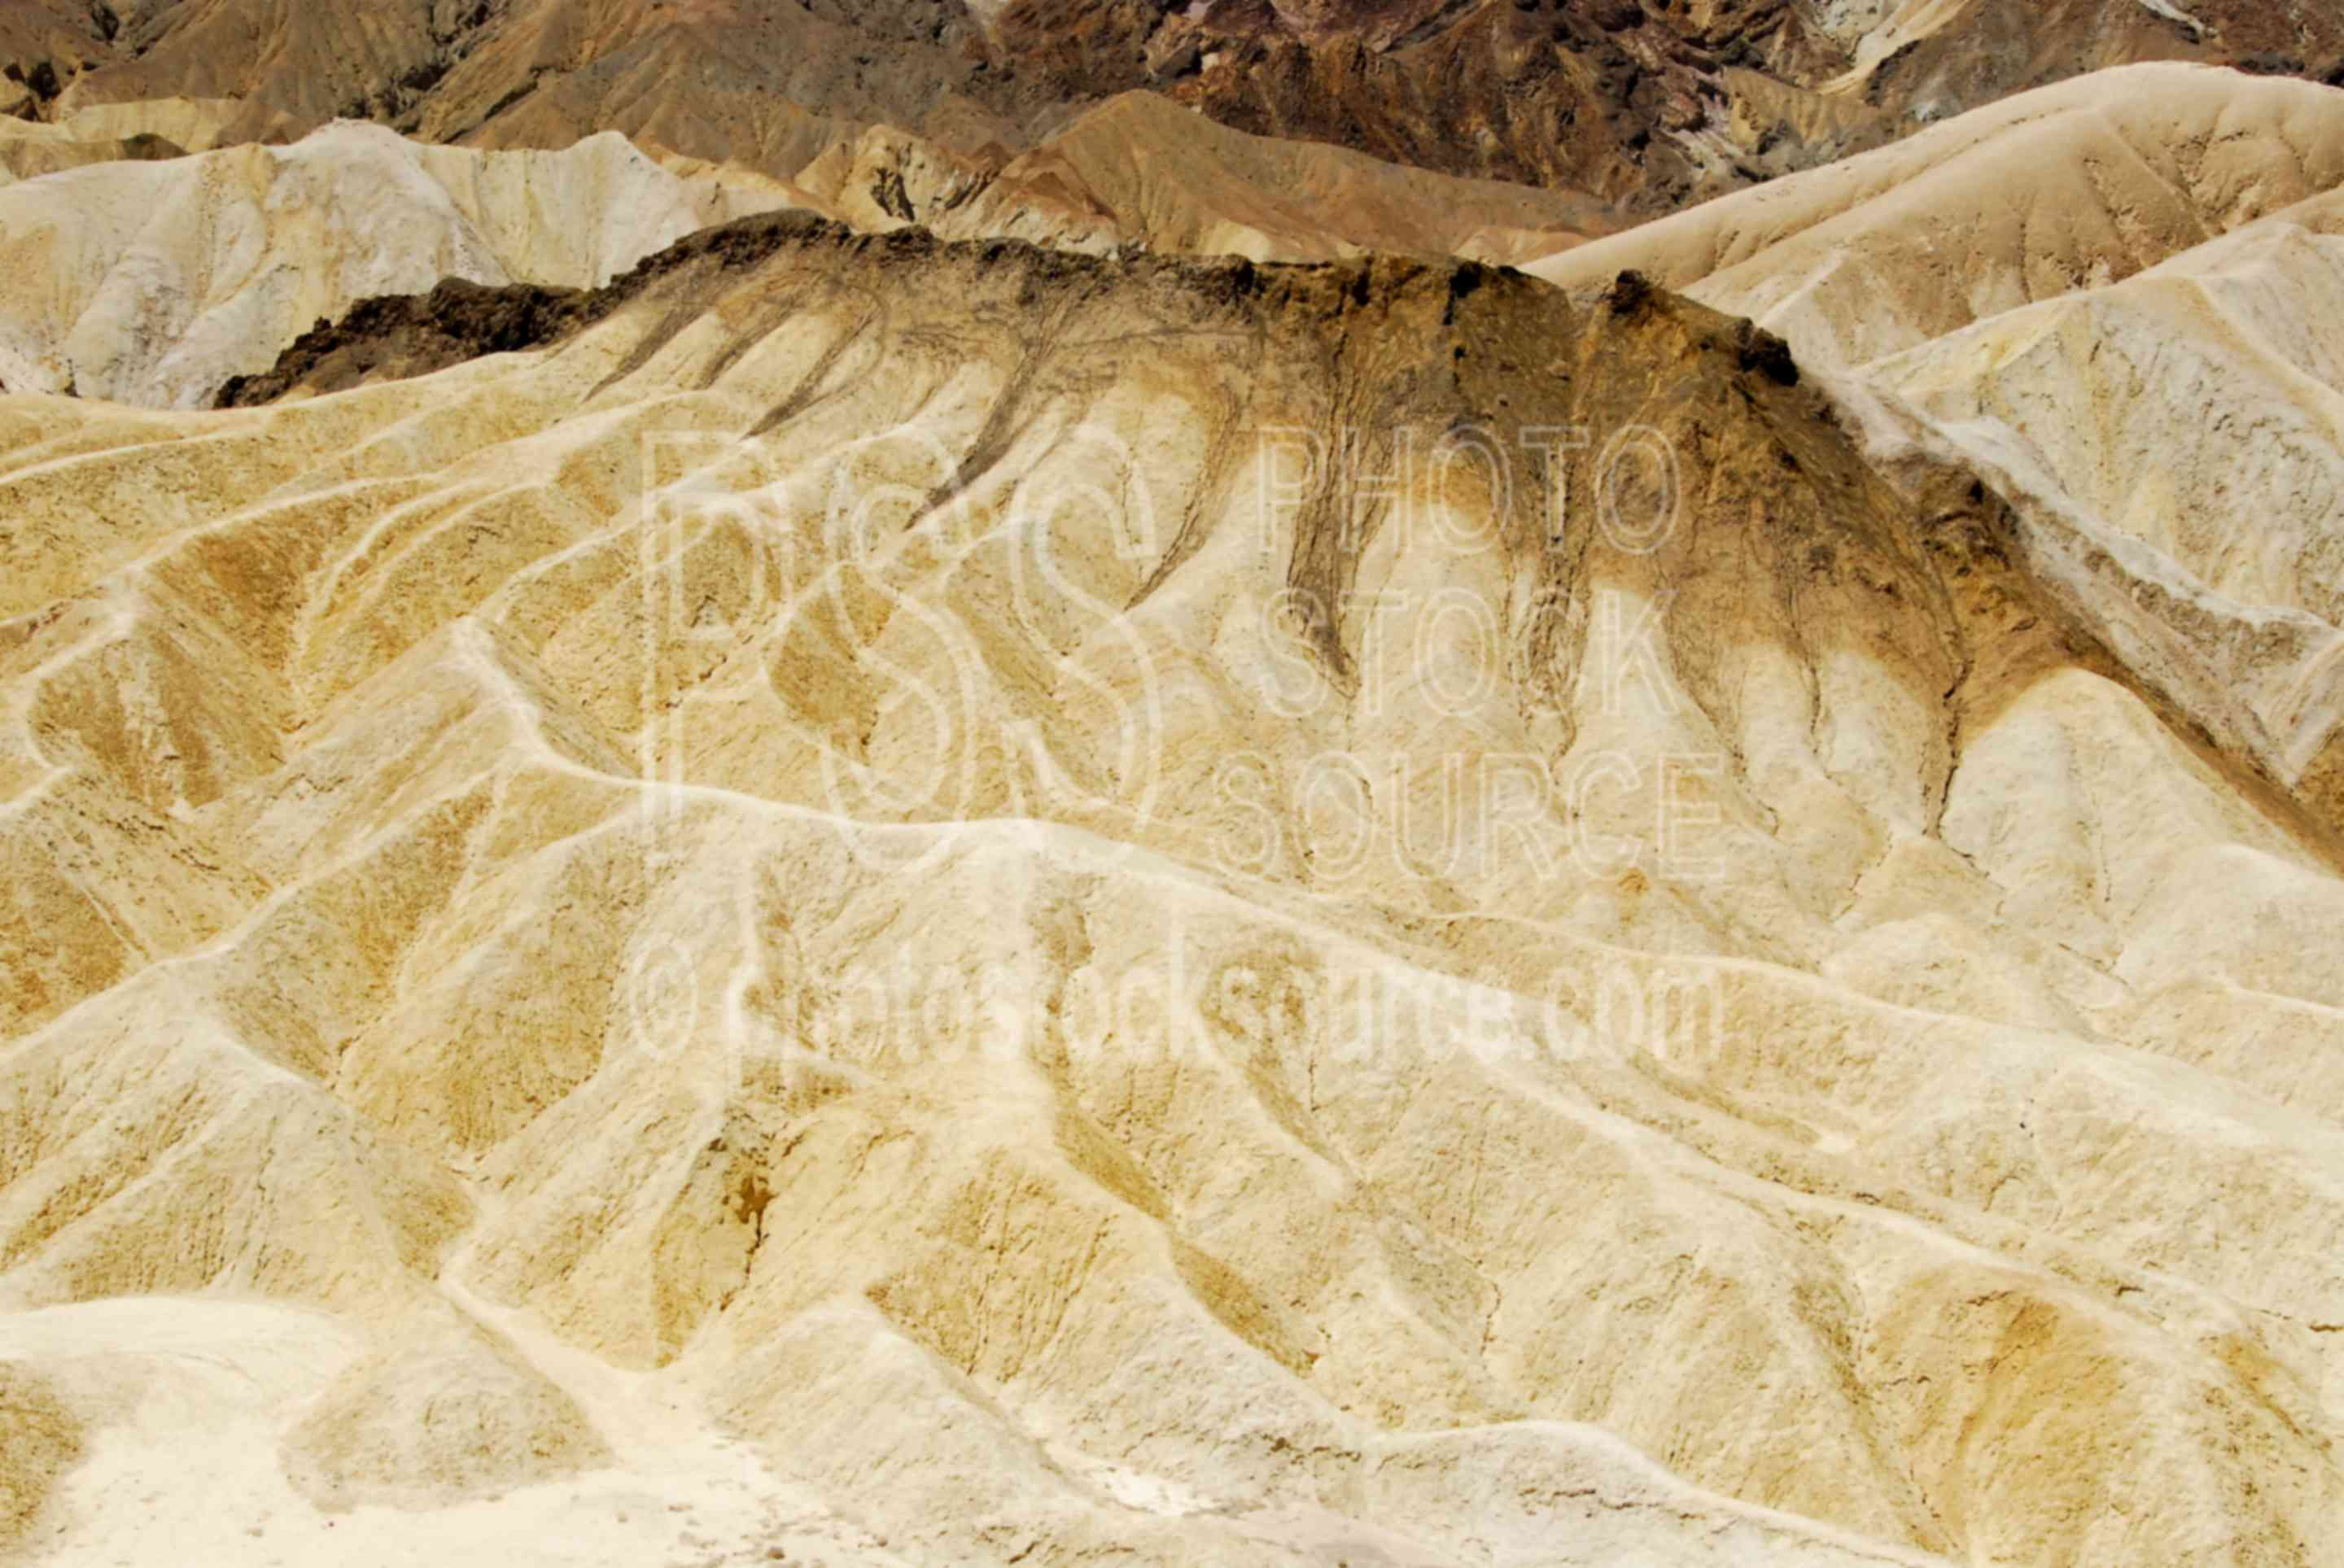 Zabriskie Point,death valley,landform,valley,dry,mineral,sedimentary